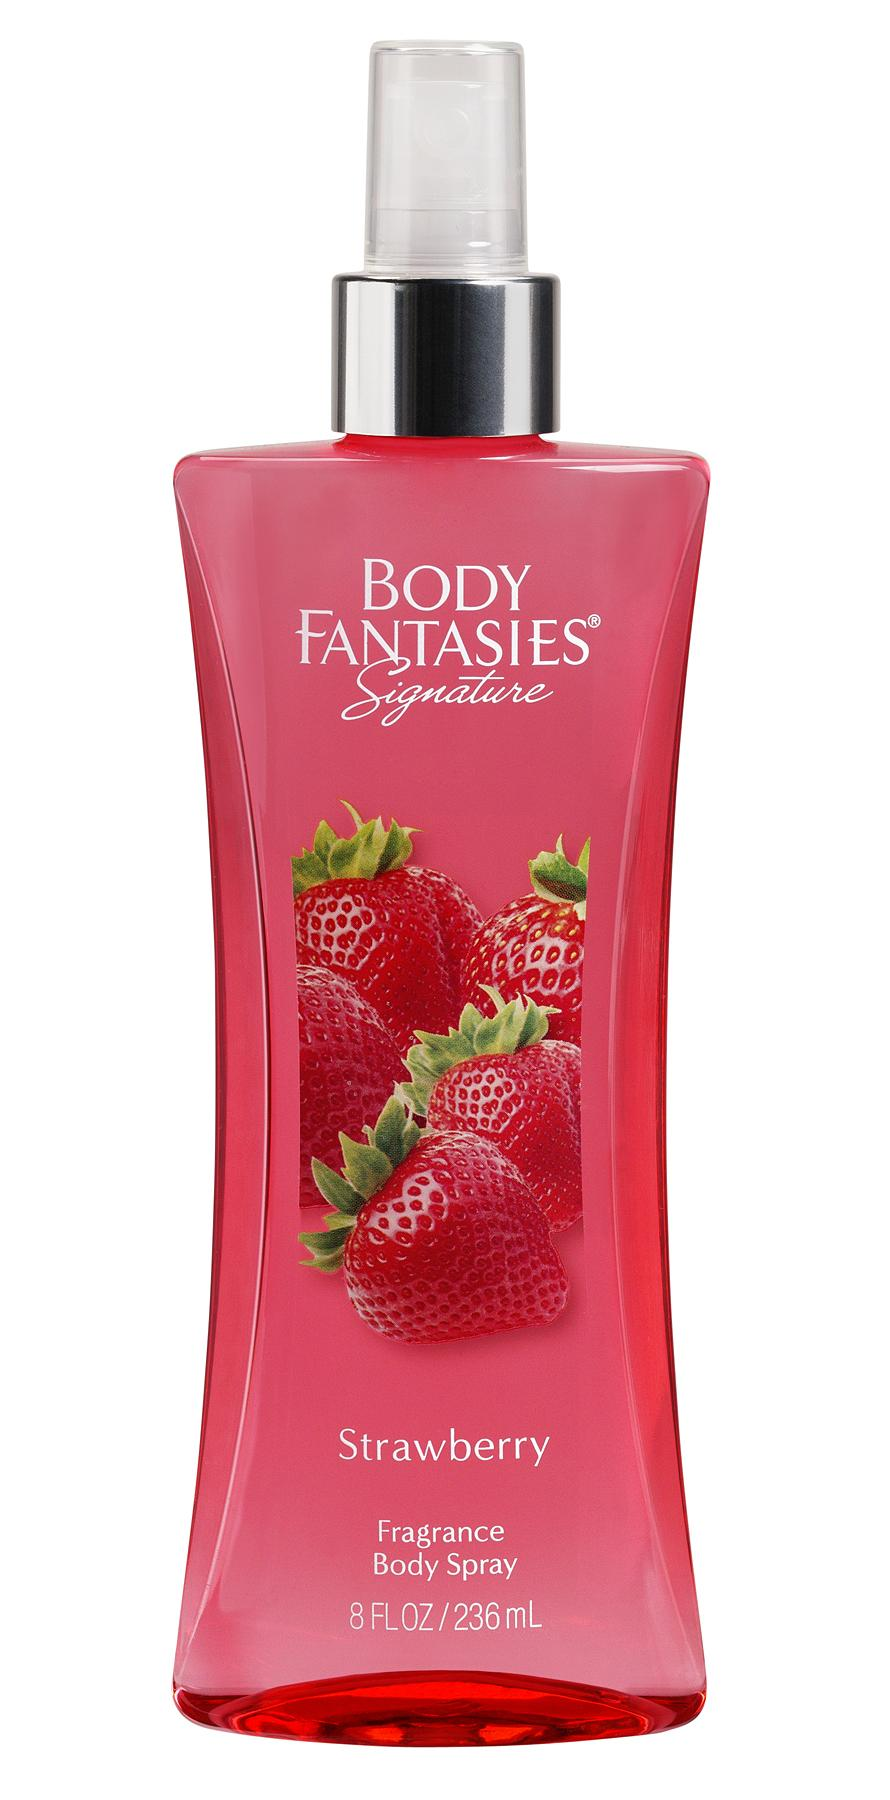 Body Fantasies Signature Strawberry Body Spray 236ml